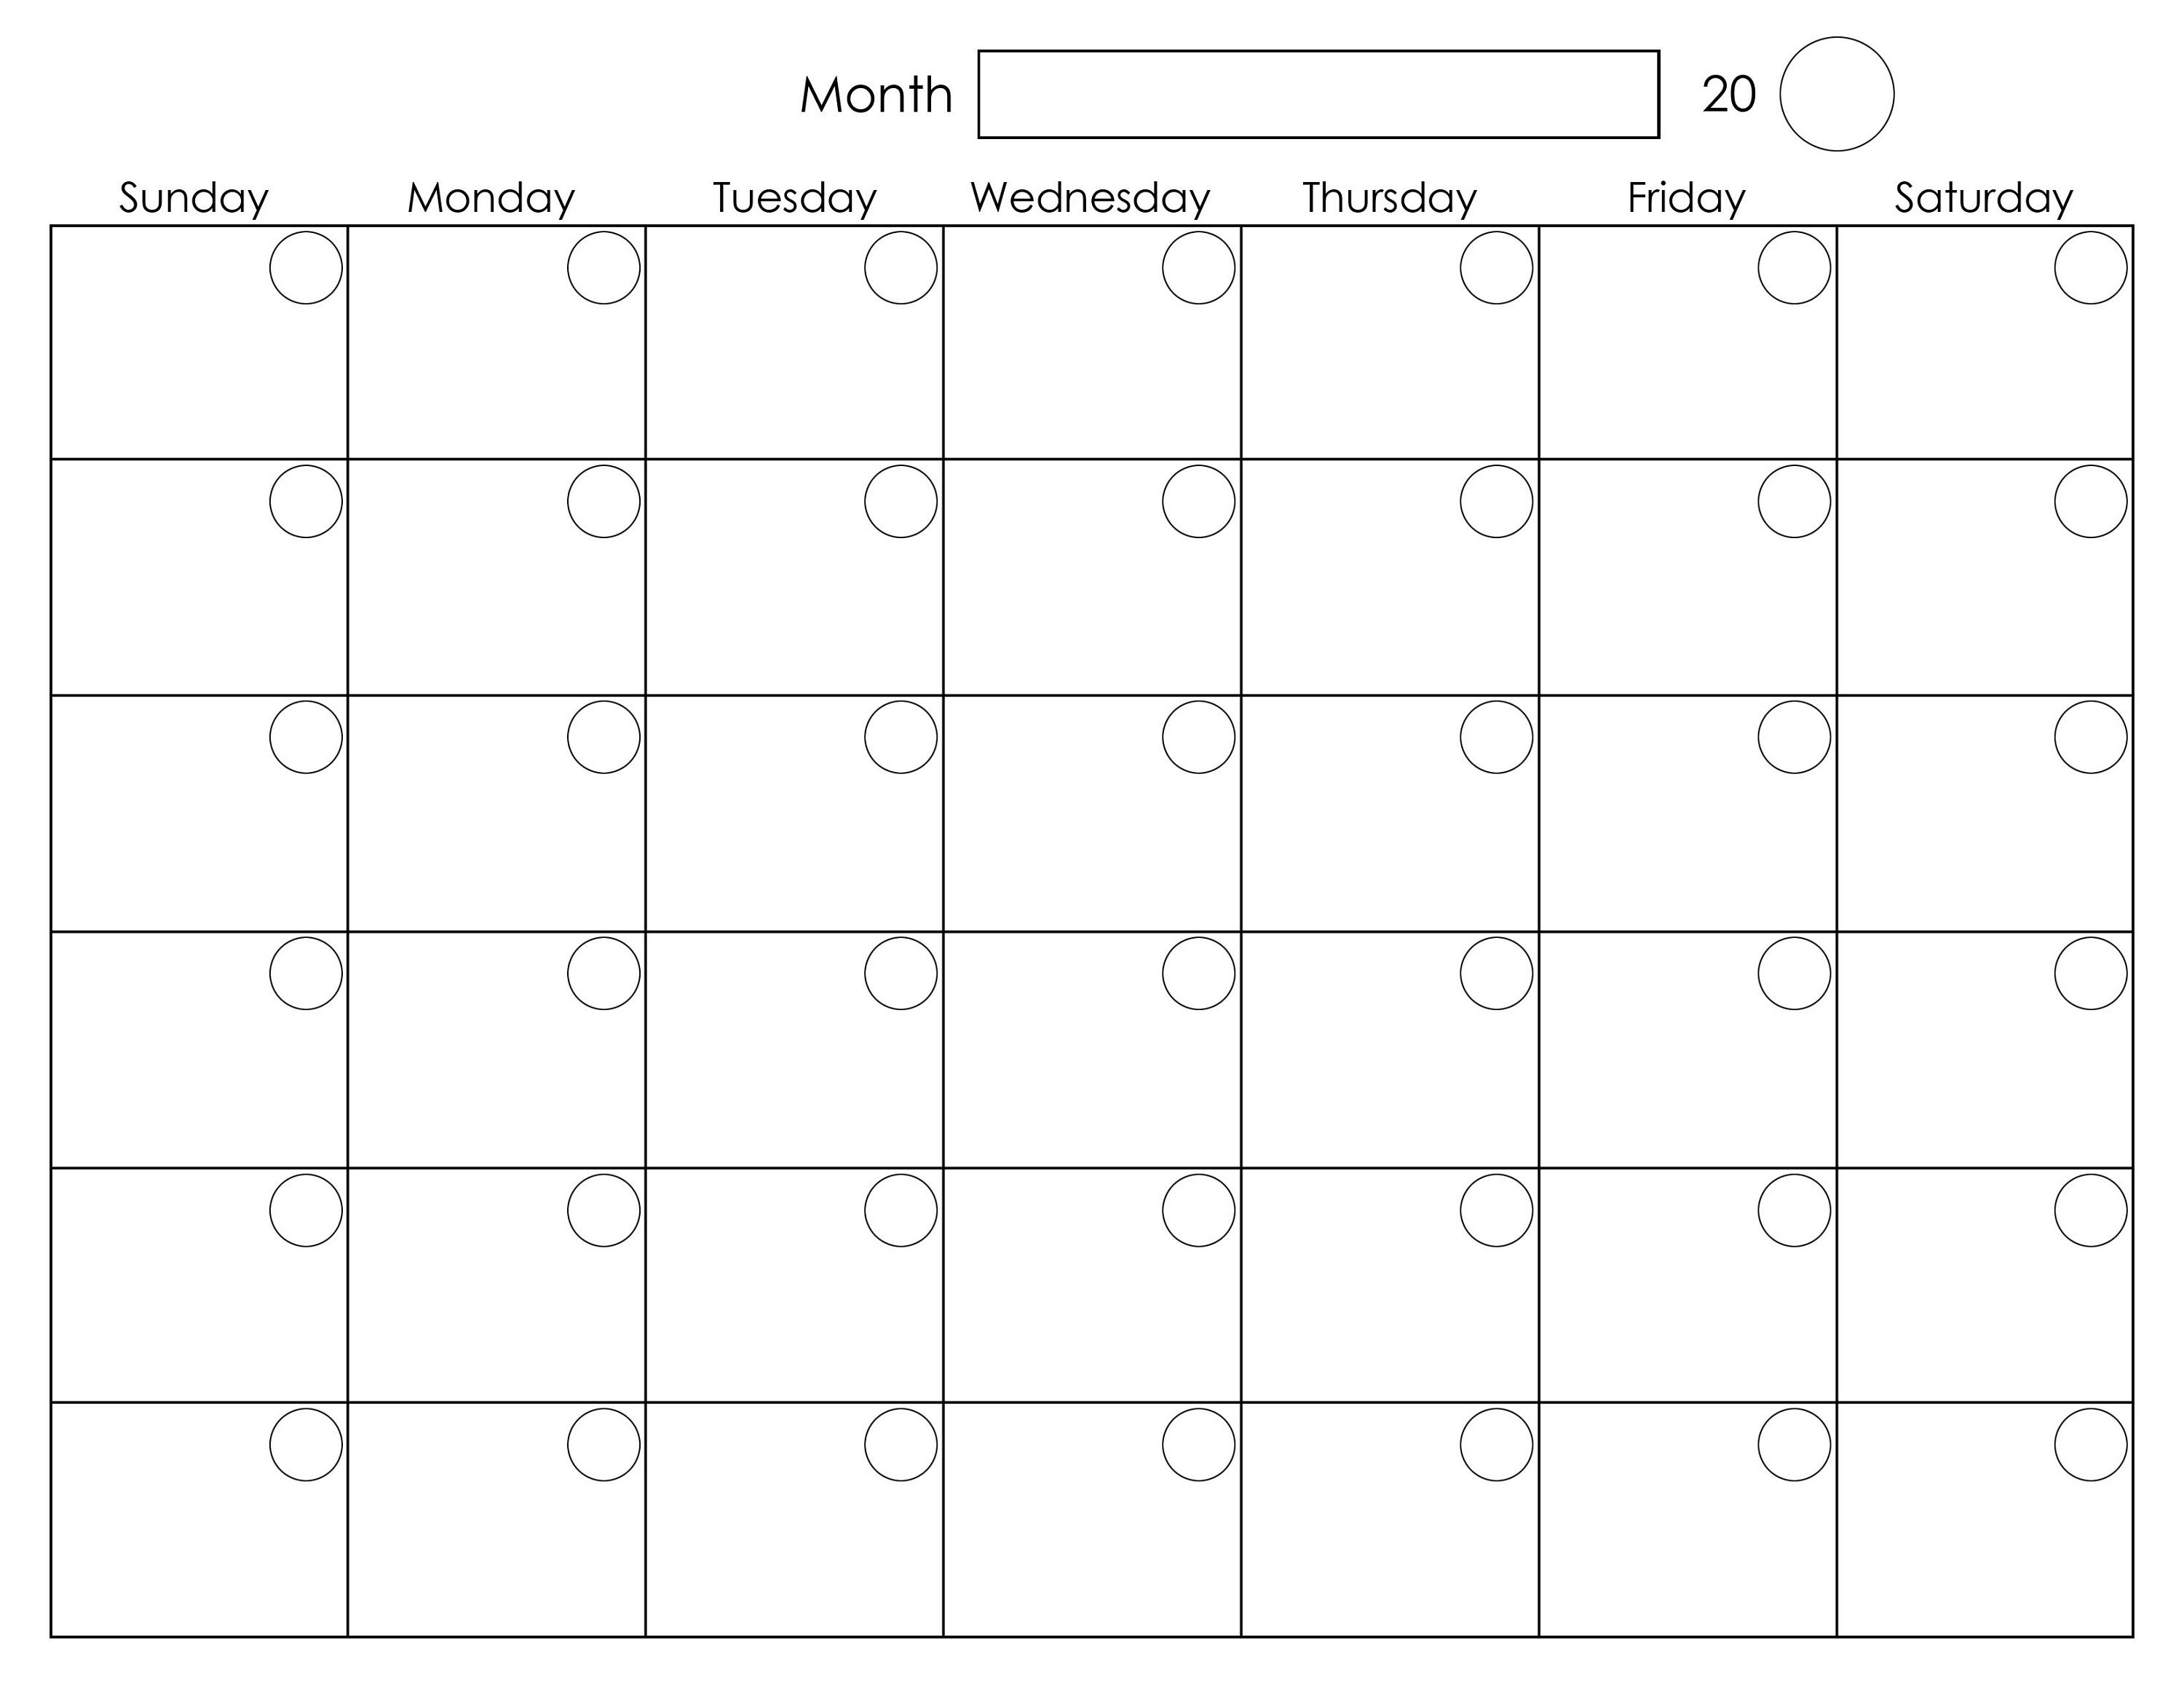 Printable Blank Monthly Calendar | Calendar Template Printable for Printable Blank Monthly Calendar Template